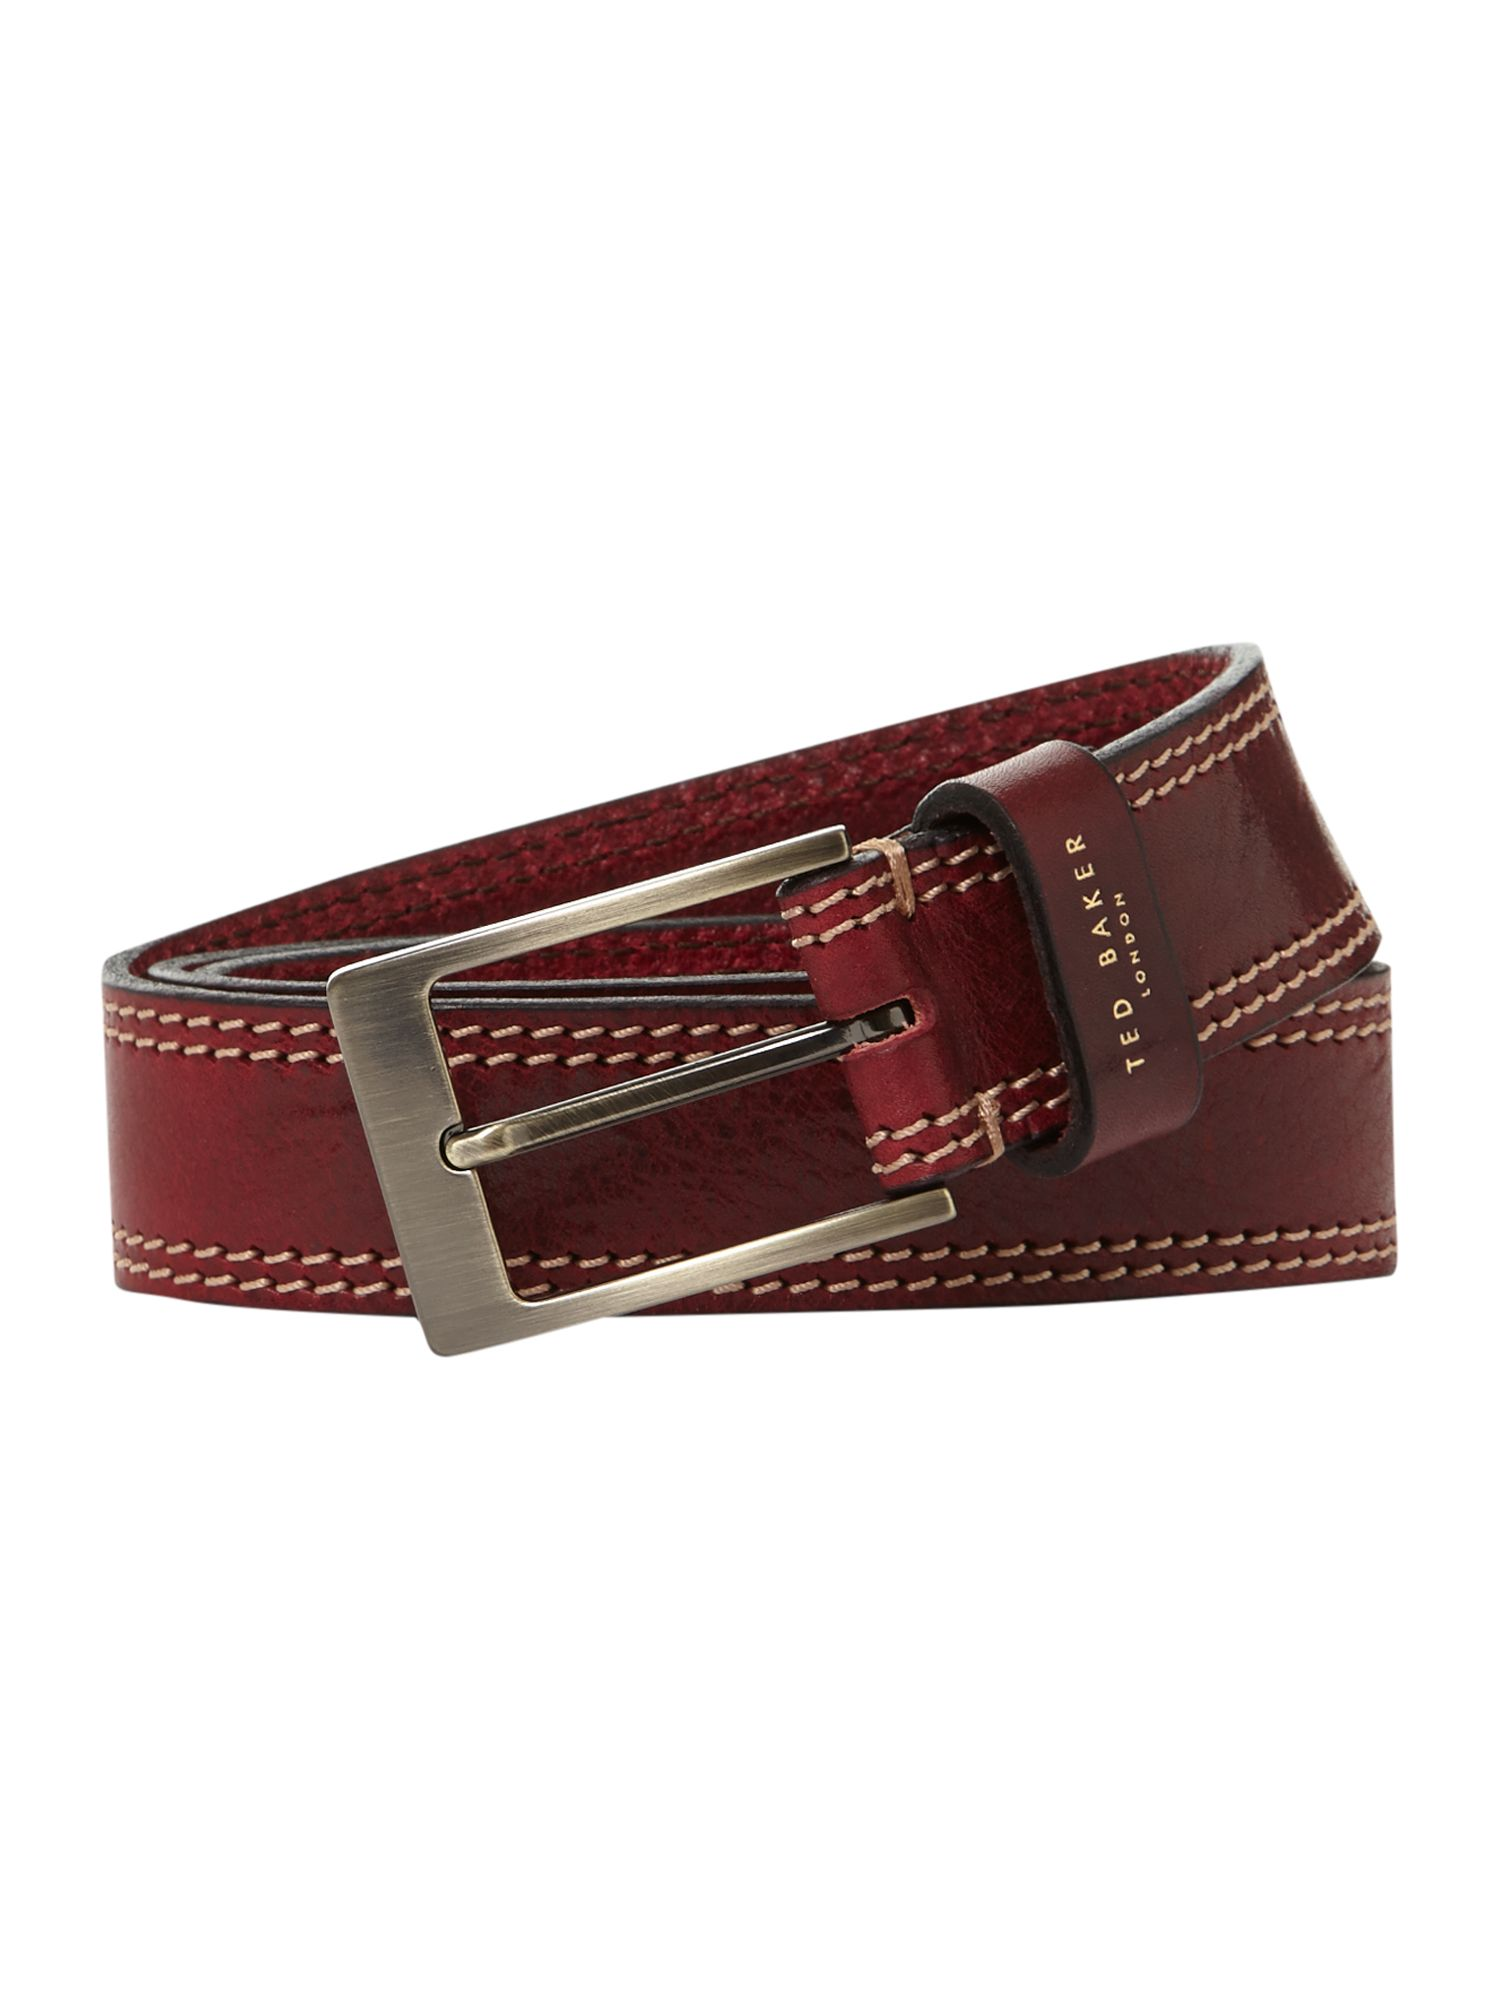 Cricket stitch belt